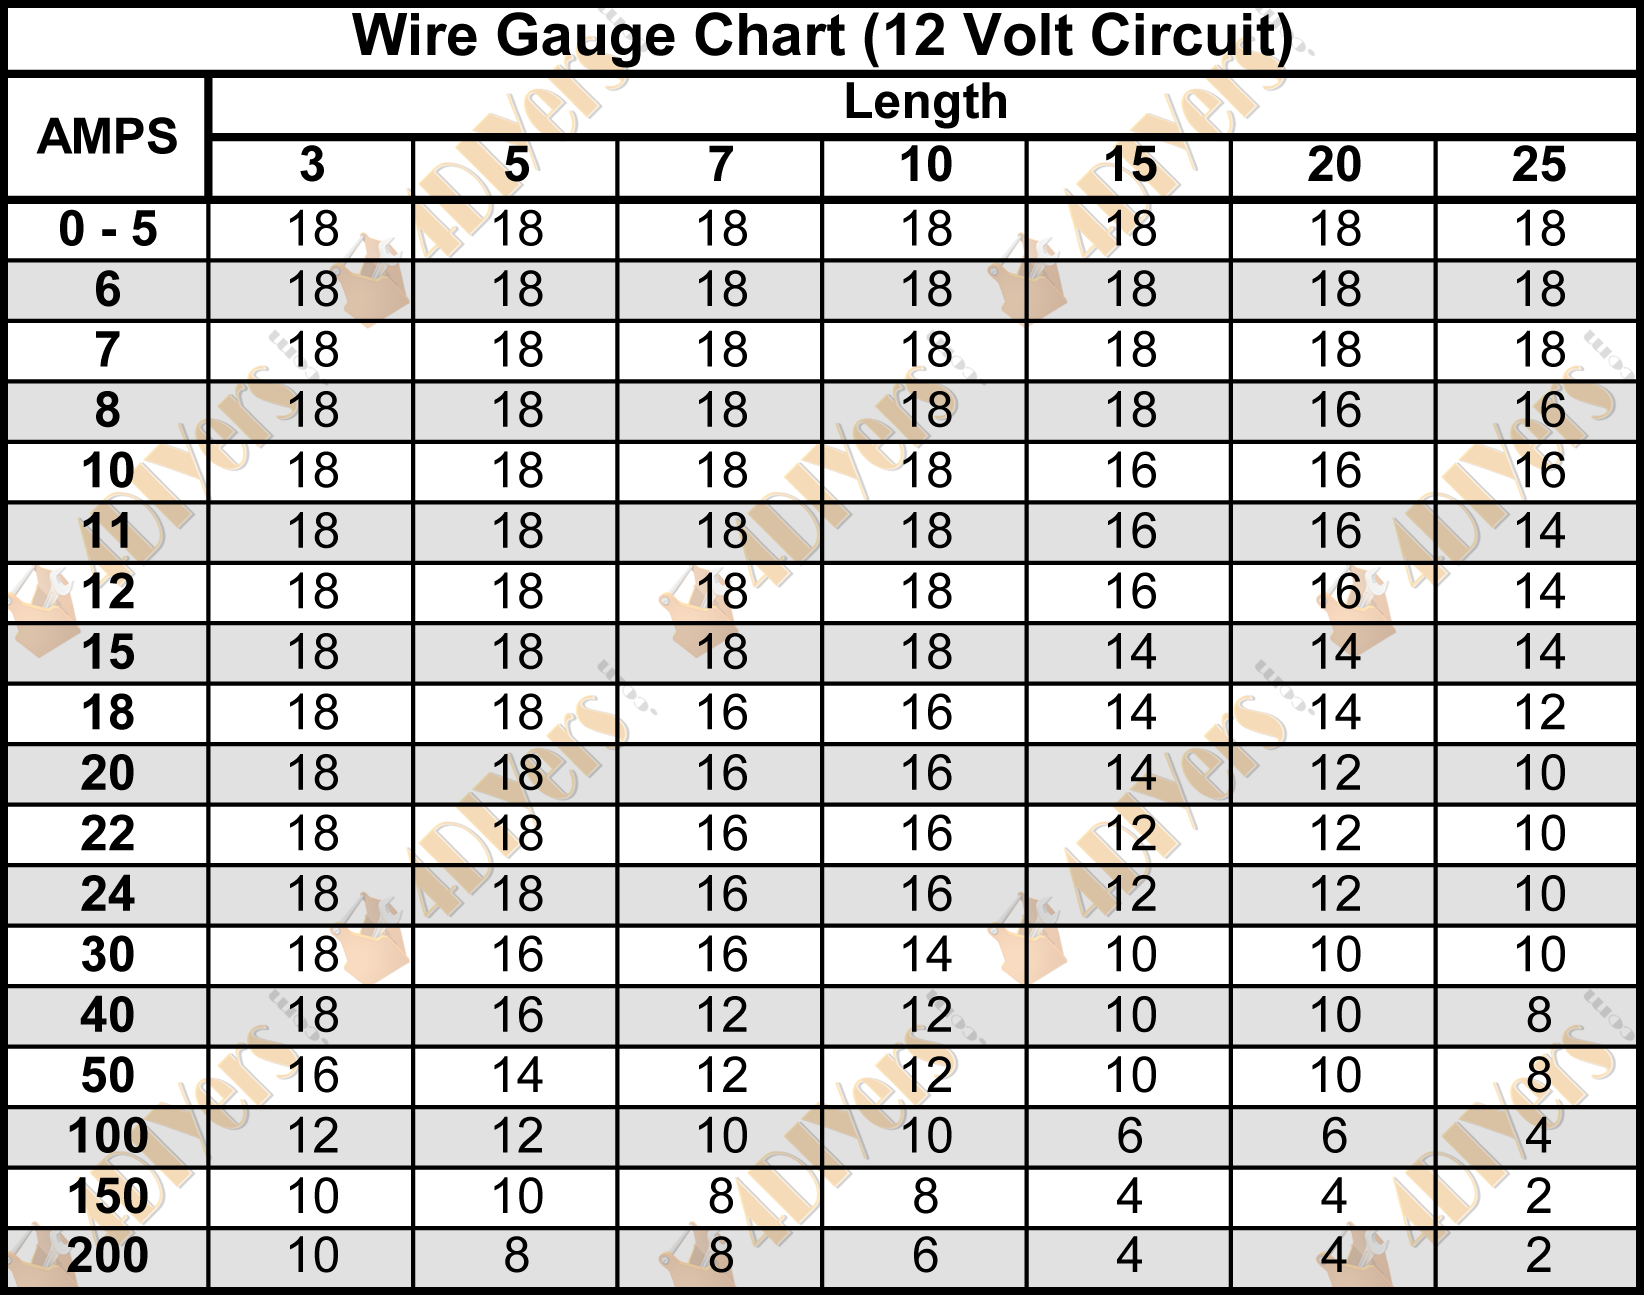 12v wire gauge chart dolapgnetband 12v wire gauge chart greentooth Choice Image